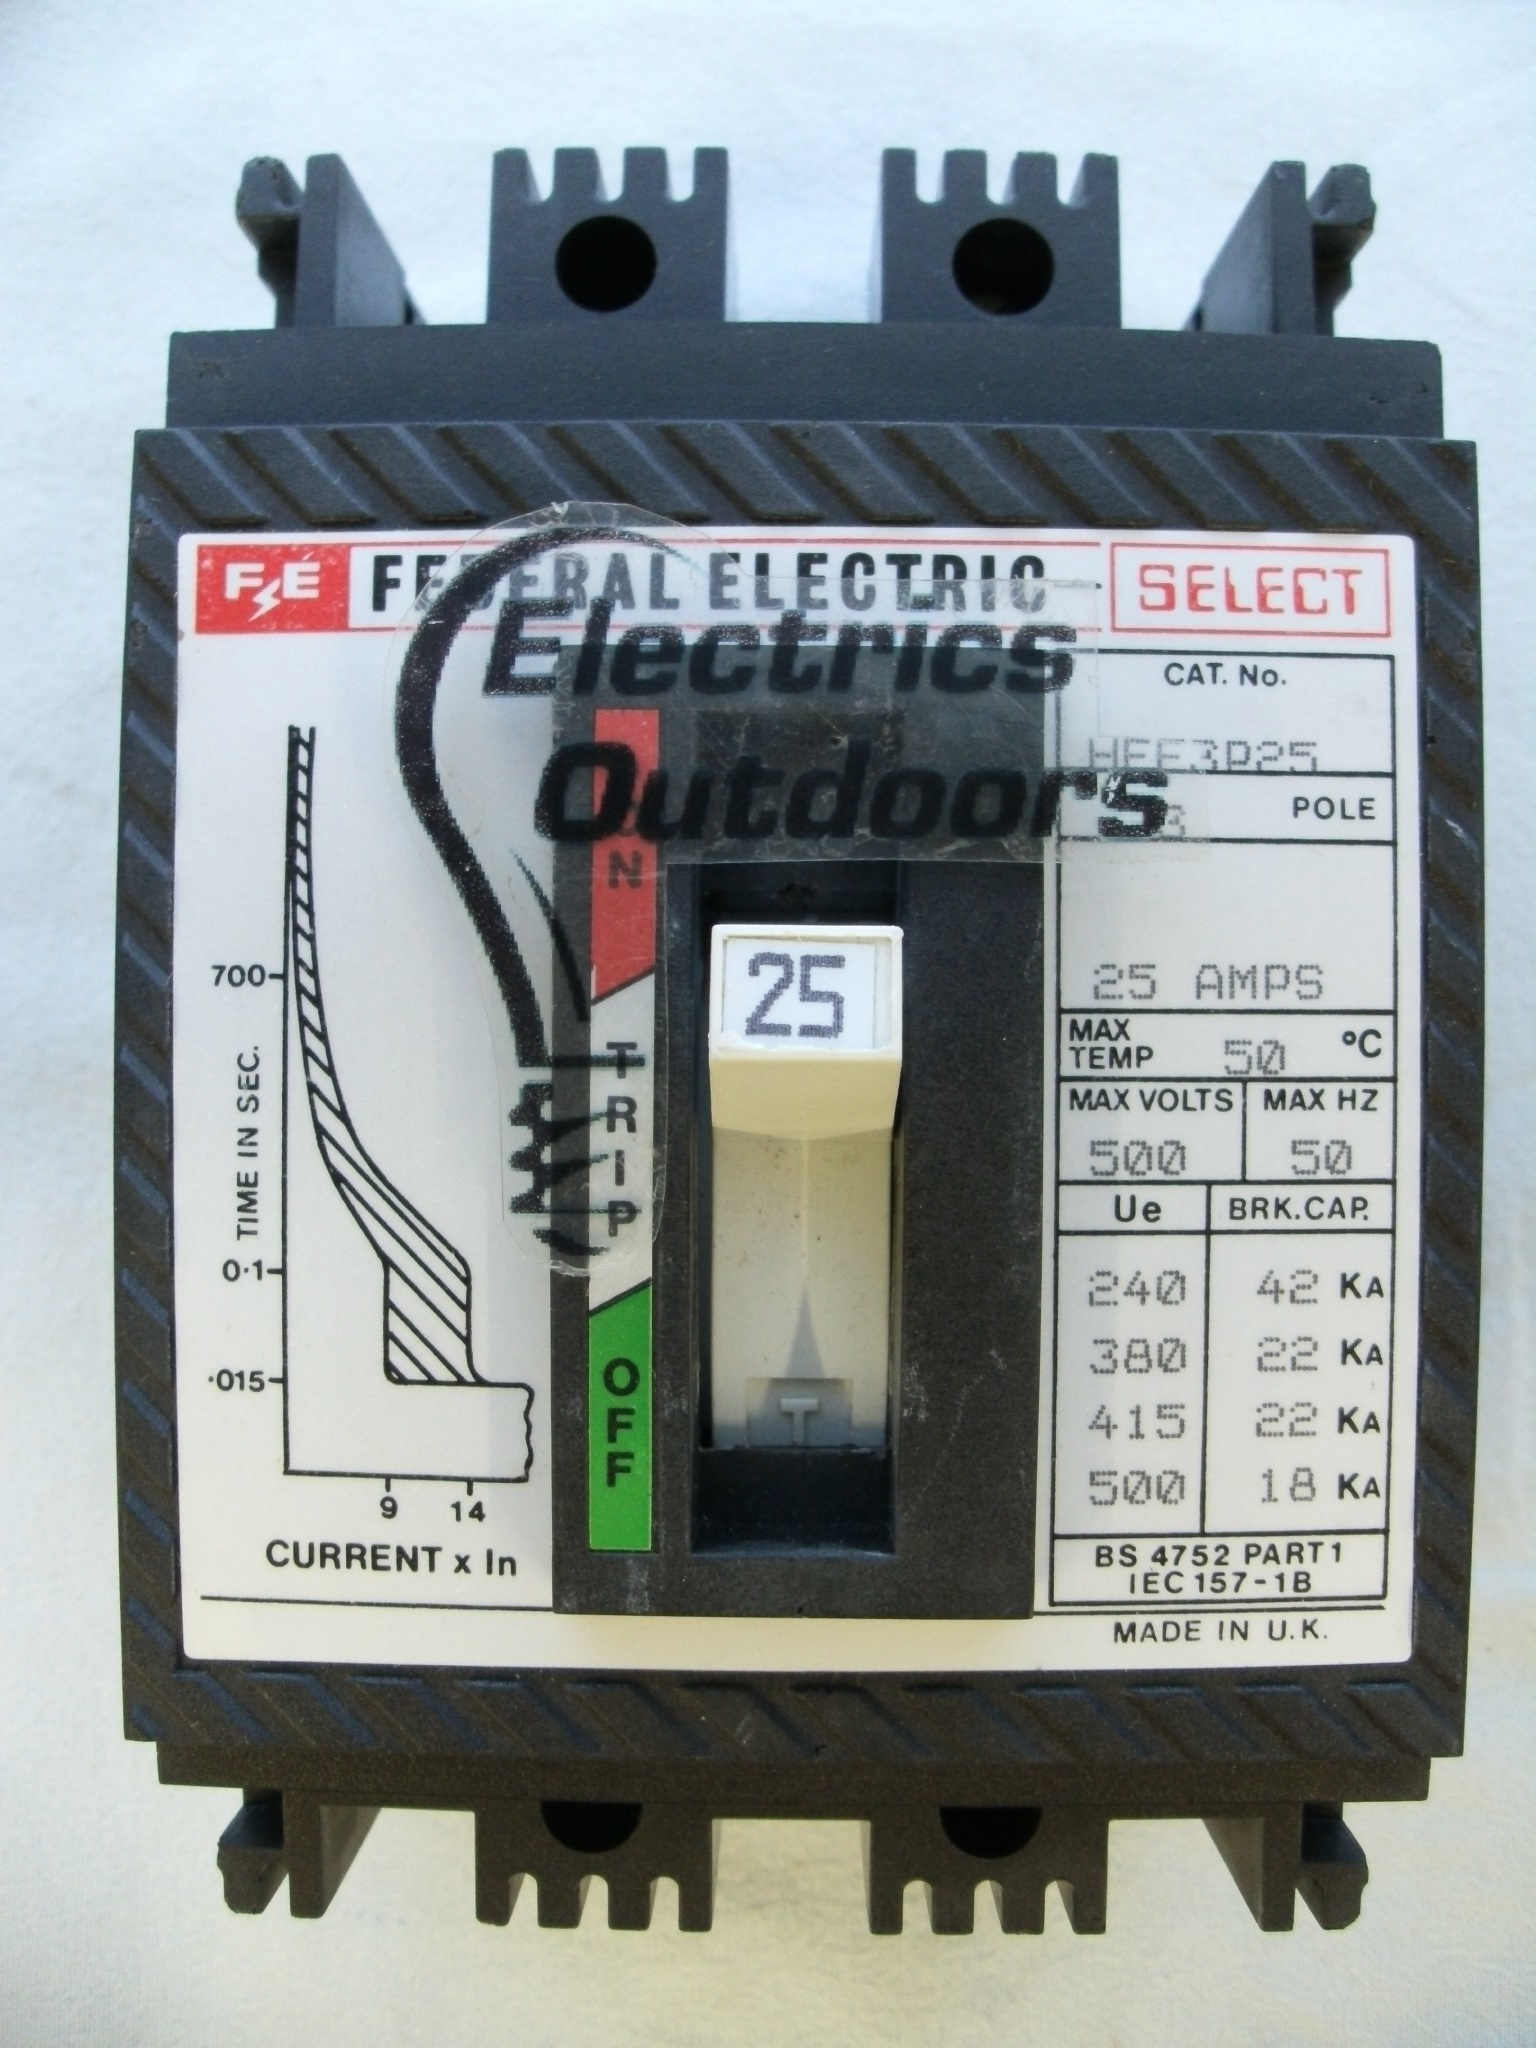 FEDERAL ELECTRIC 25 AMP 22 kA TRIPLE POLE MCCB SELECT HEF3P25